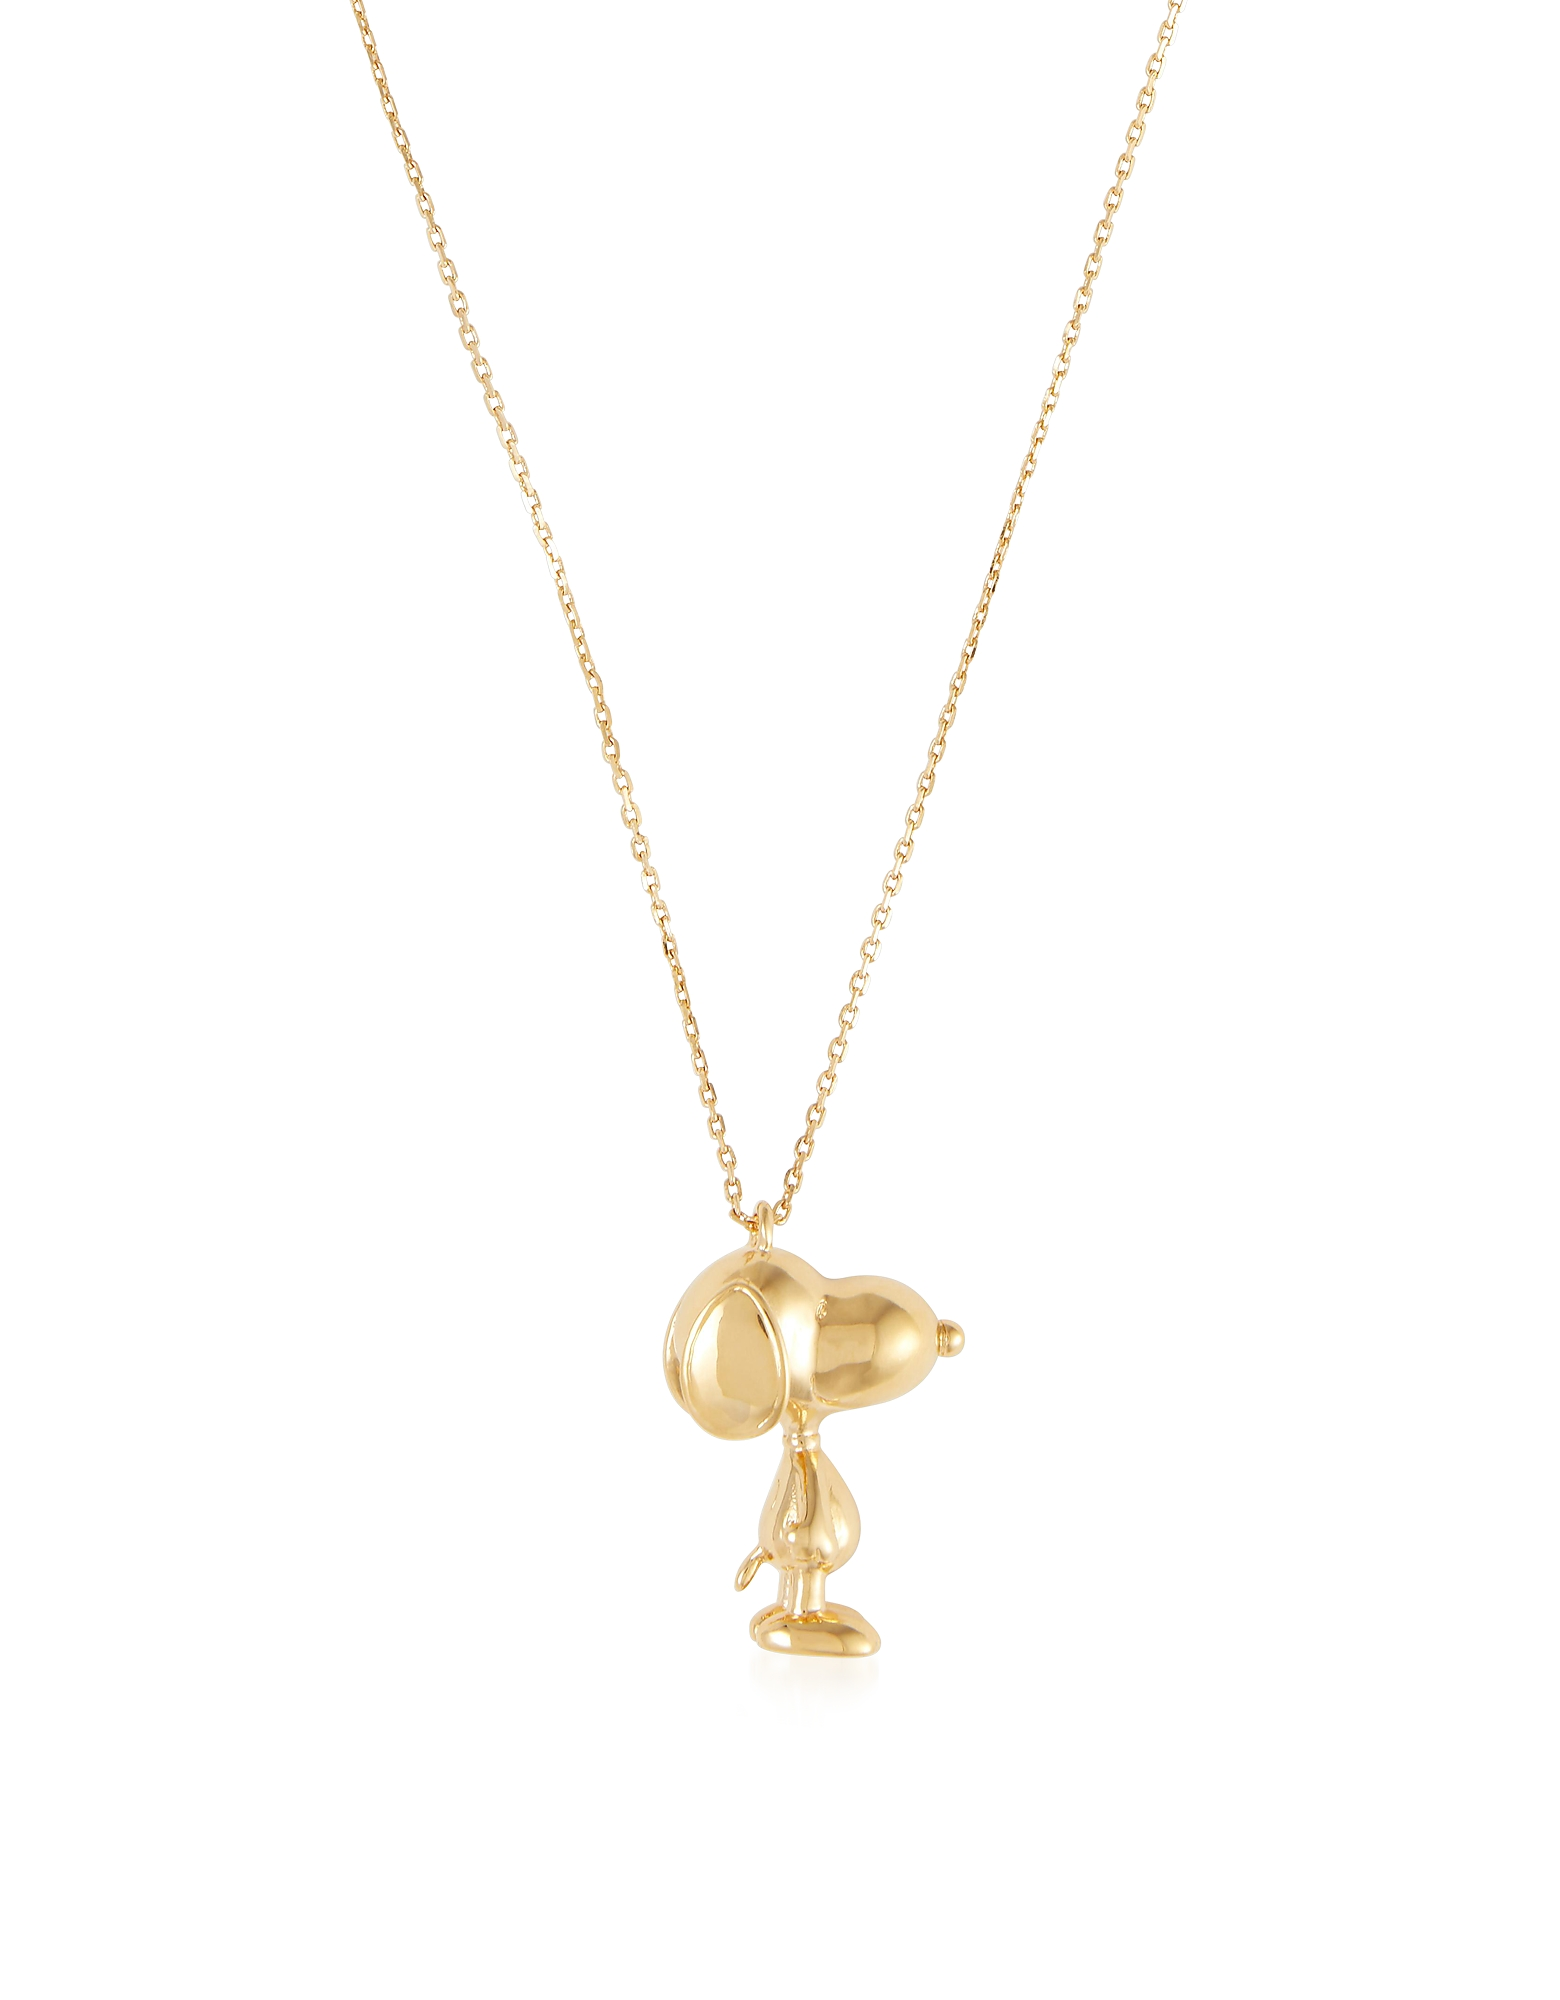 The Snoopy Pendant Necklace